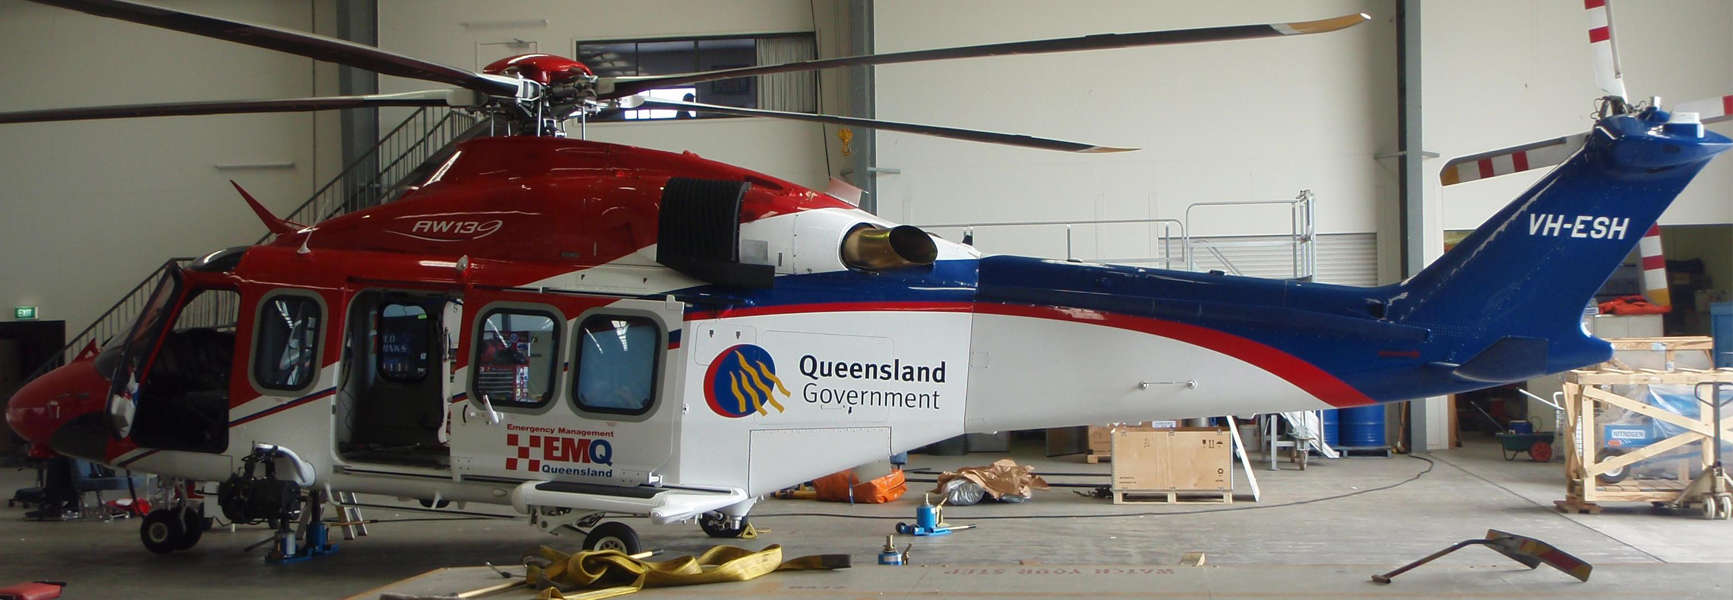 Hangar Tarmac Capabilities-Quality Avionics for Aircraft Upgrades and Maintenance located in Archerfield, Brisbane.